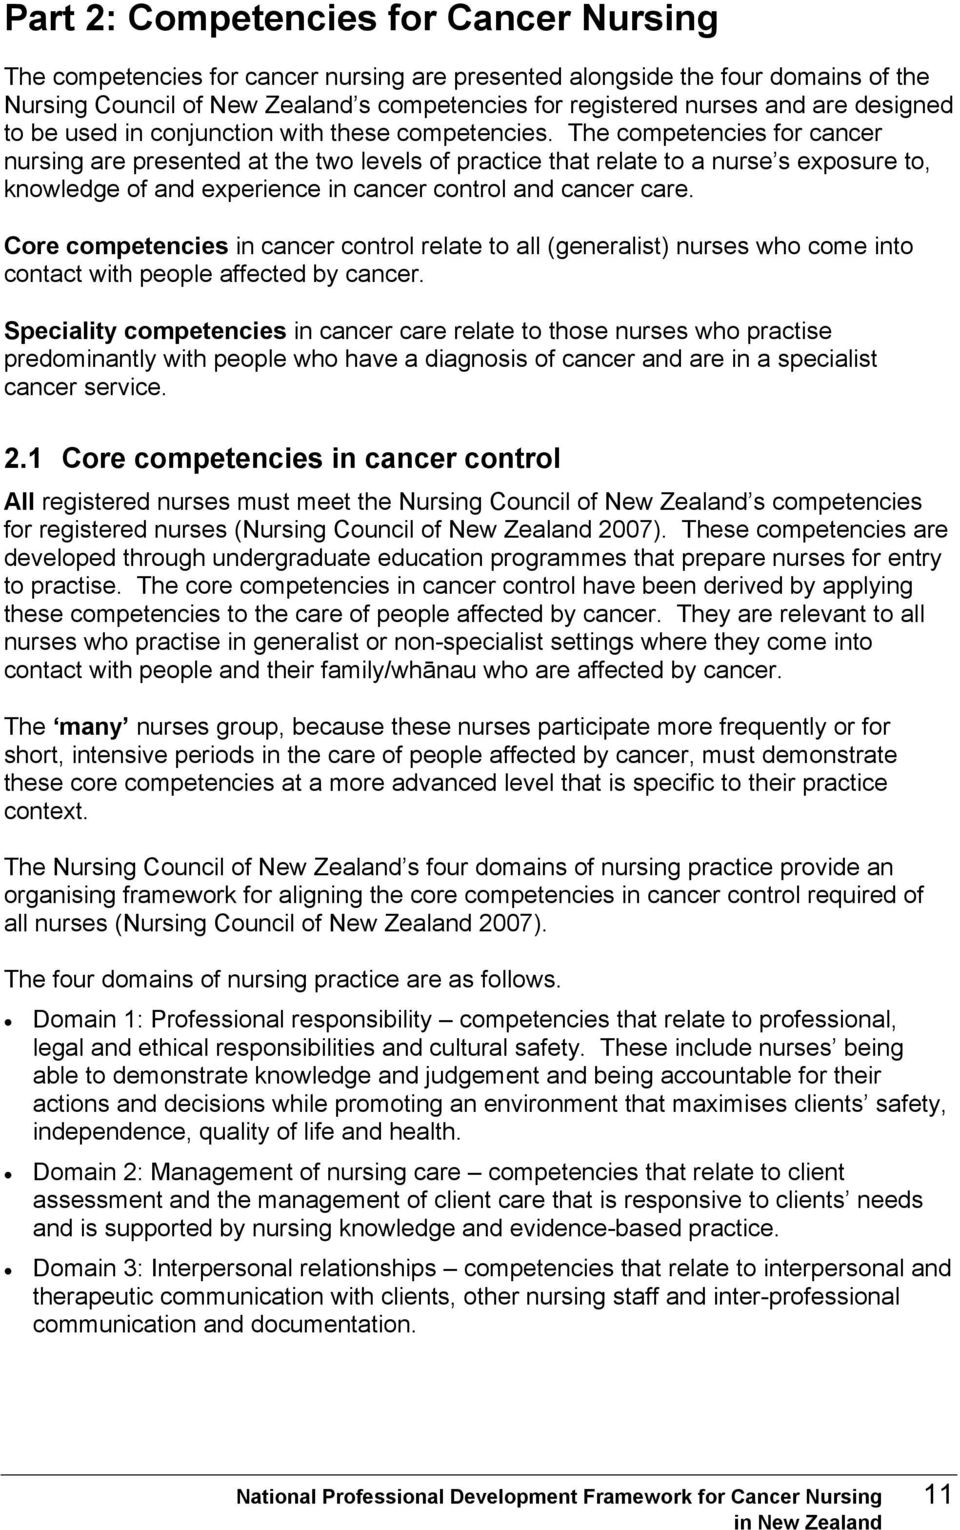 The competencies for cancer nursing are presented at the two levels of practice that relate to a nurse s exposure to, knowledge of and experience in cancer control and cancer care.